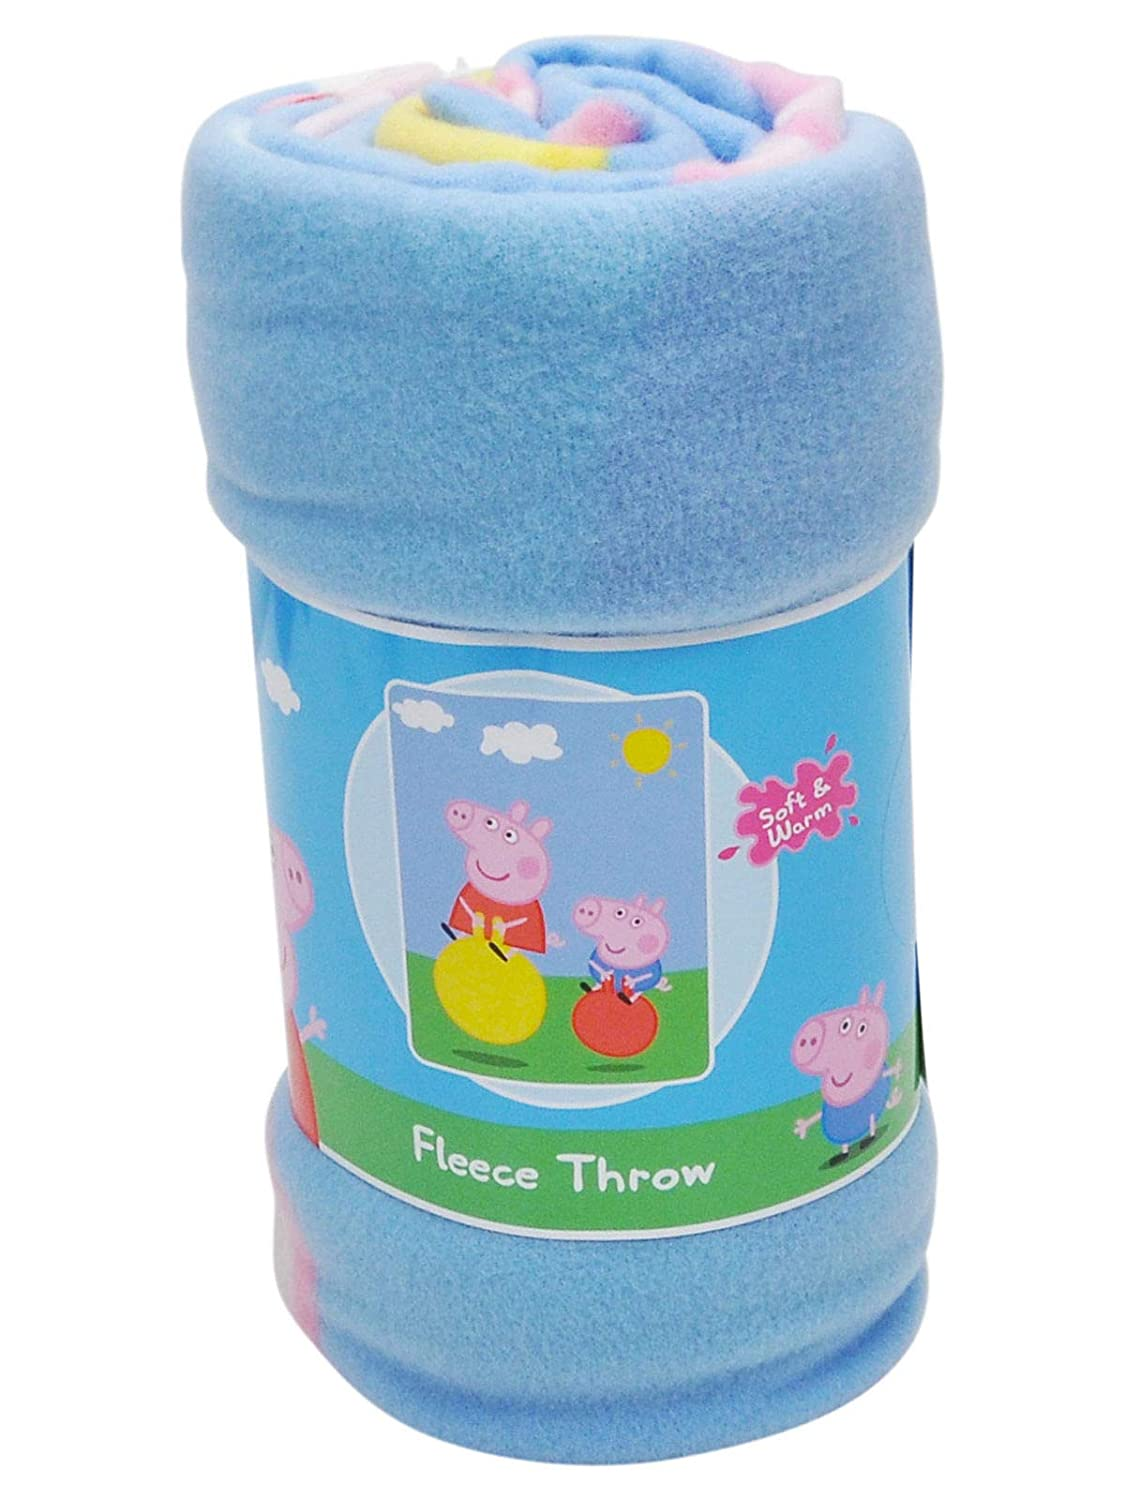 Northwest The Company Peppa Pig Fleece Throw Blanket, 46 x 60, Multicolor 46 x 60